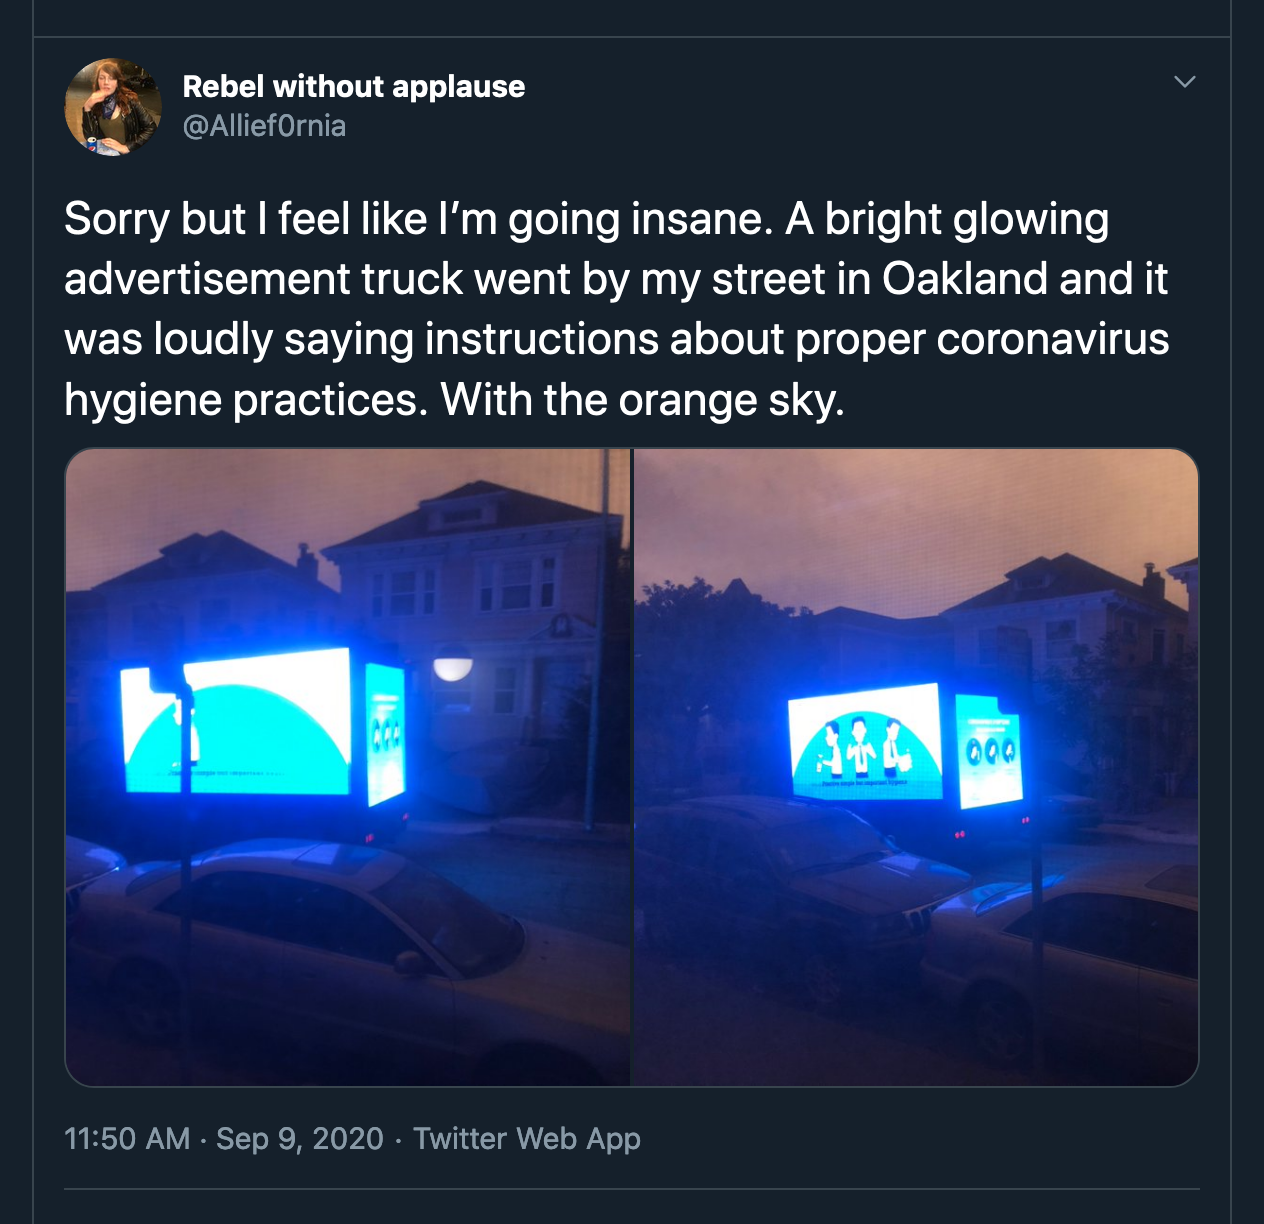 Sorry but I feel like I'm going insane. A bright glowing advertisement truck went by my street in Oakland and it was loudly saying instructions about proper coronavirus hygiene practices. With the orange sky.